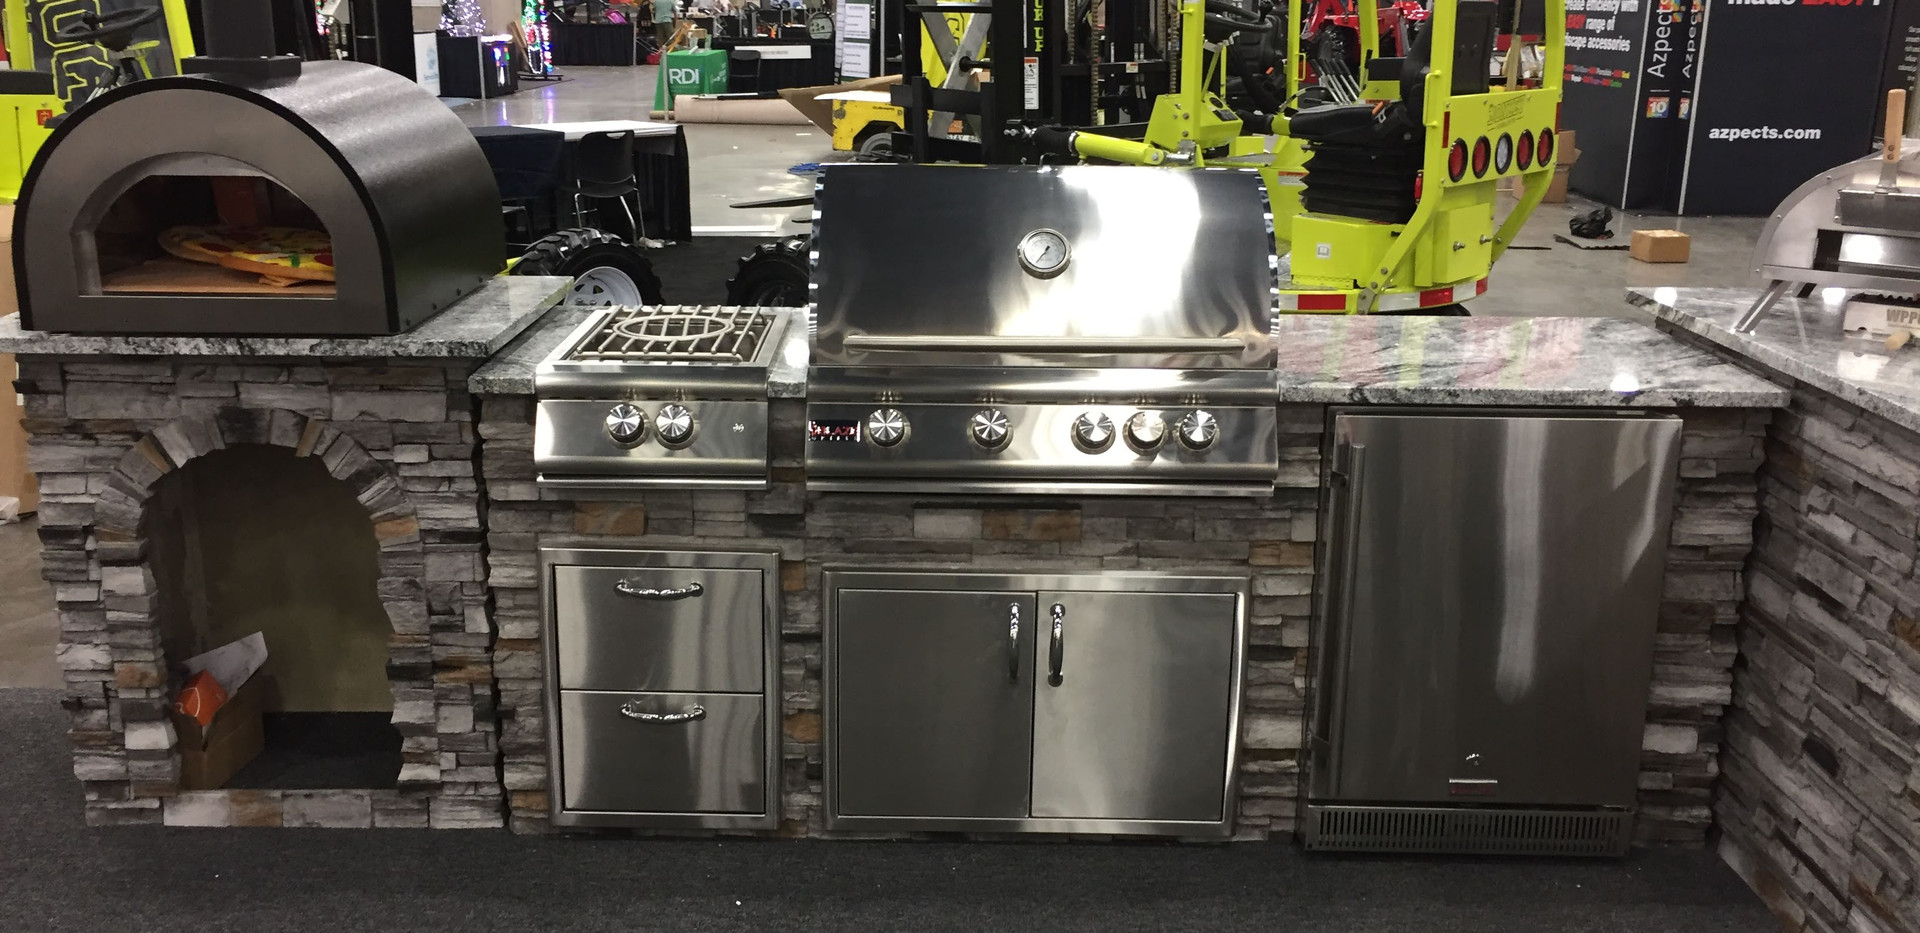 8' Grill Island with Add-Ons